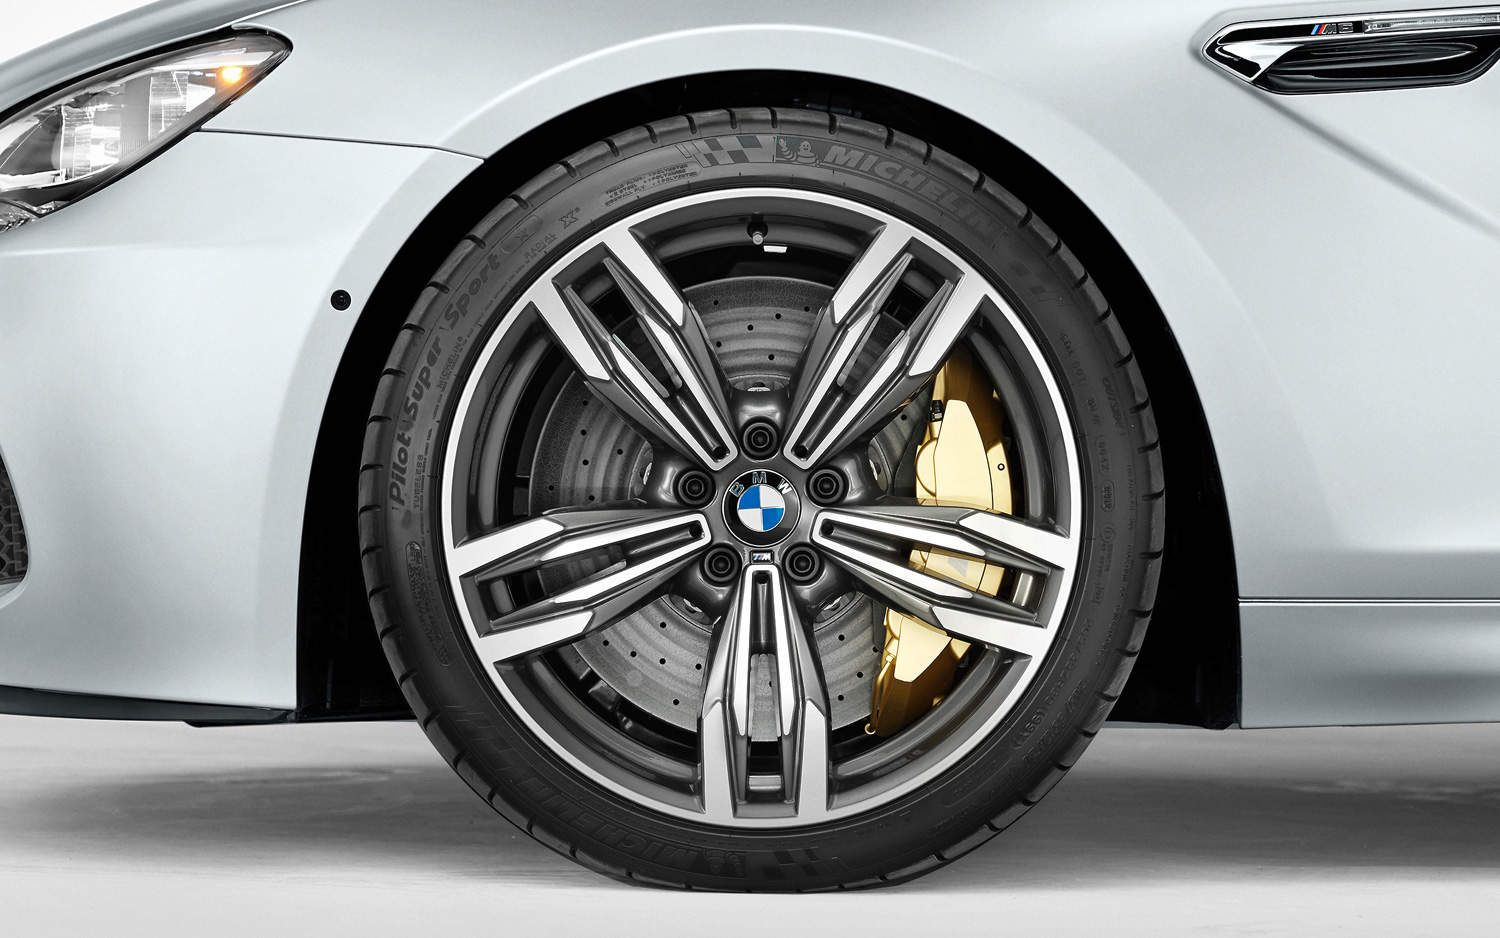 BMW M6 wheel composite brakes